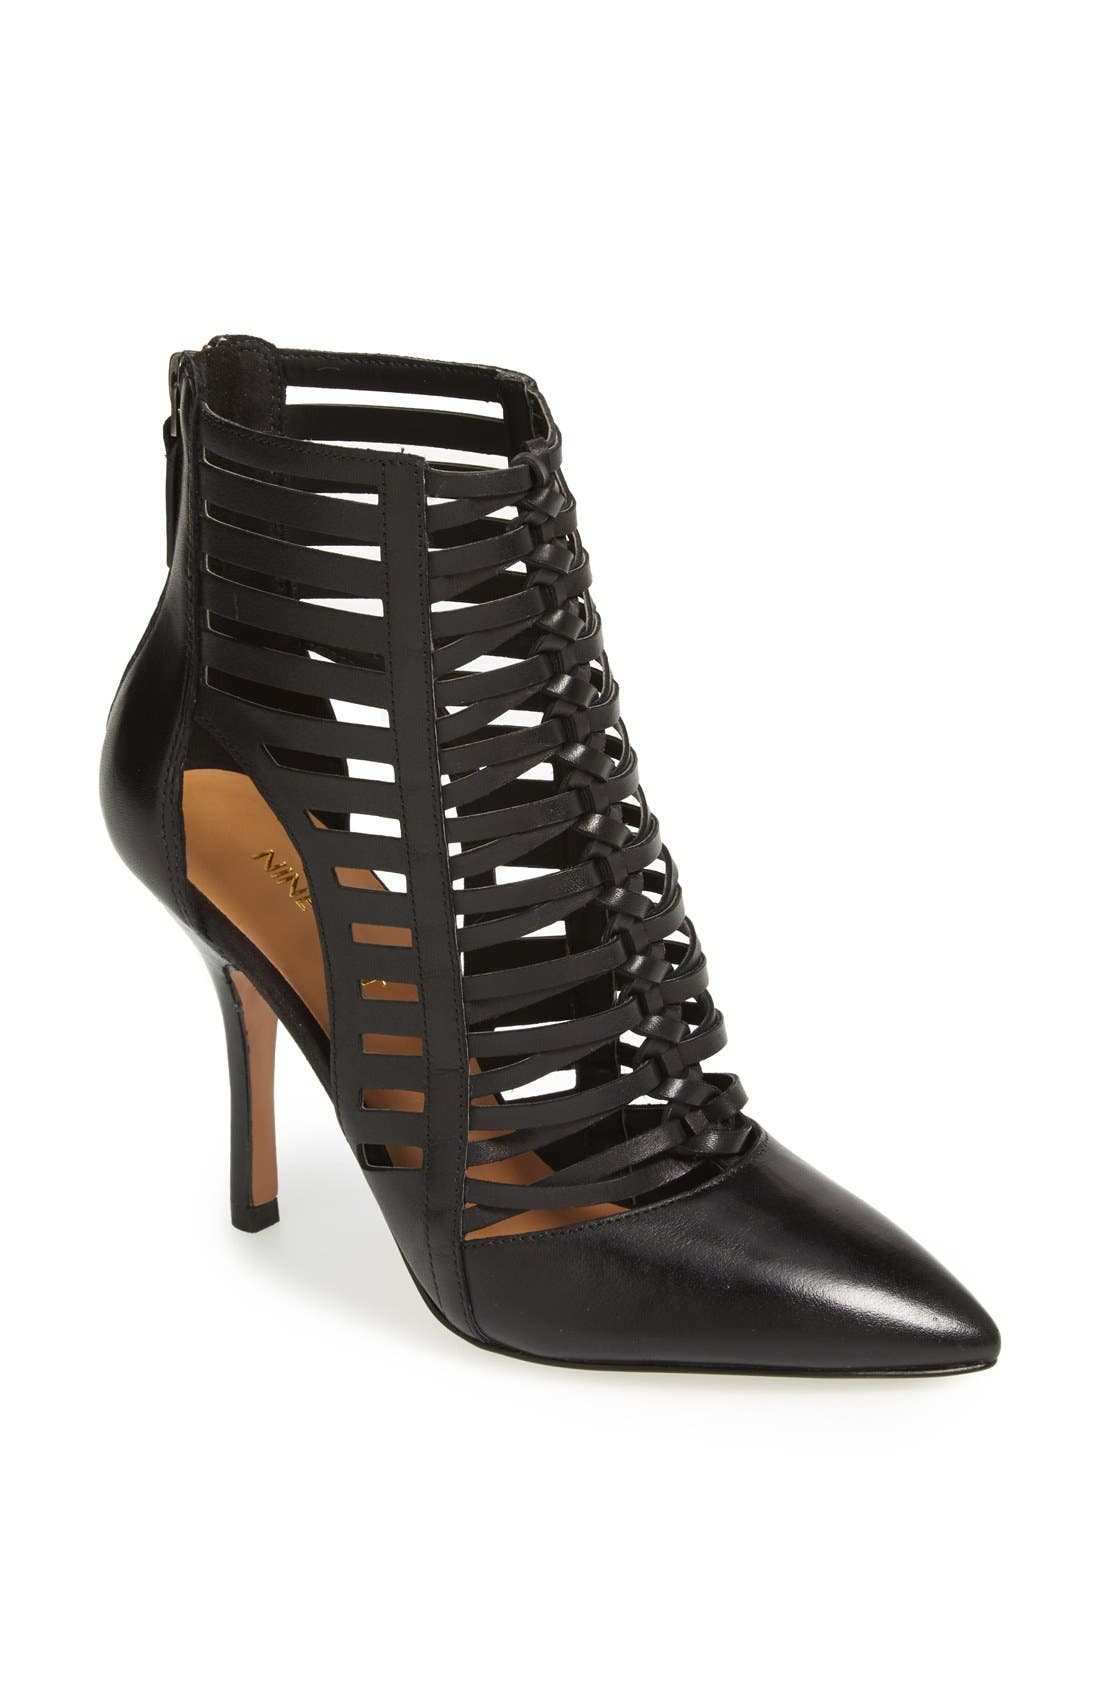 Main Image - Nine West 'Bessy' Leather Bootie